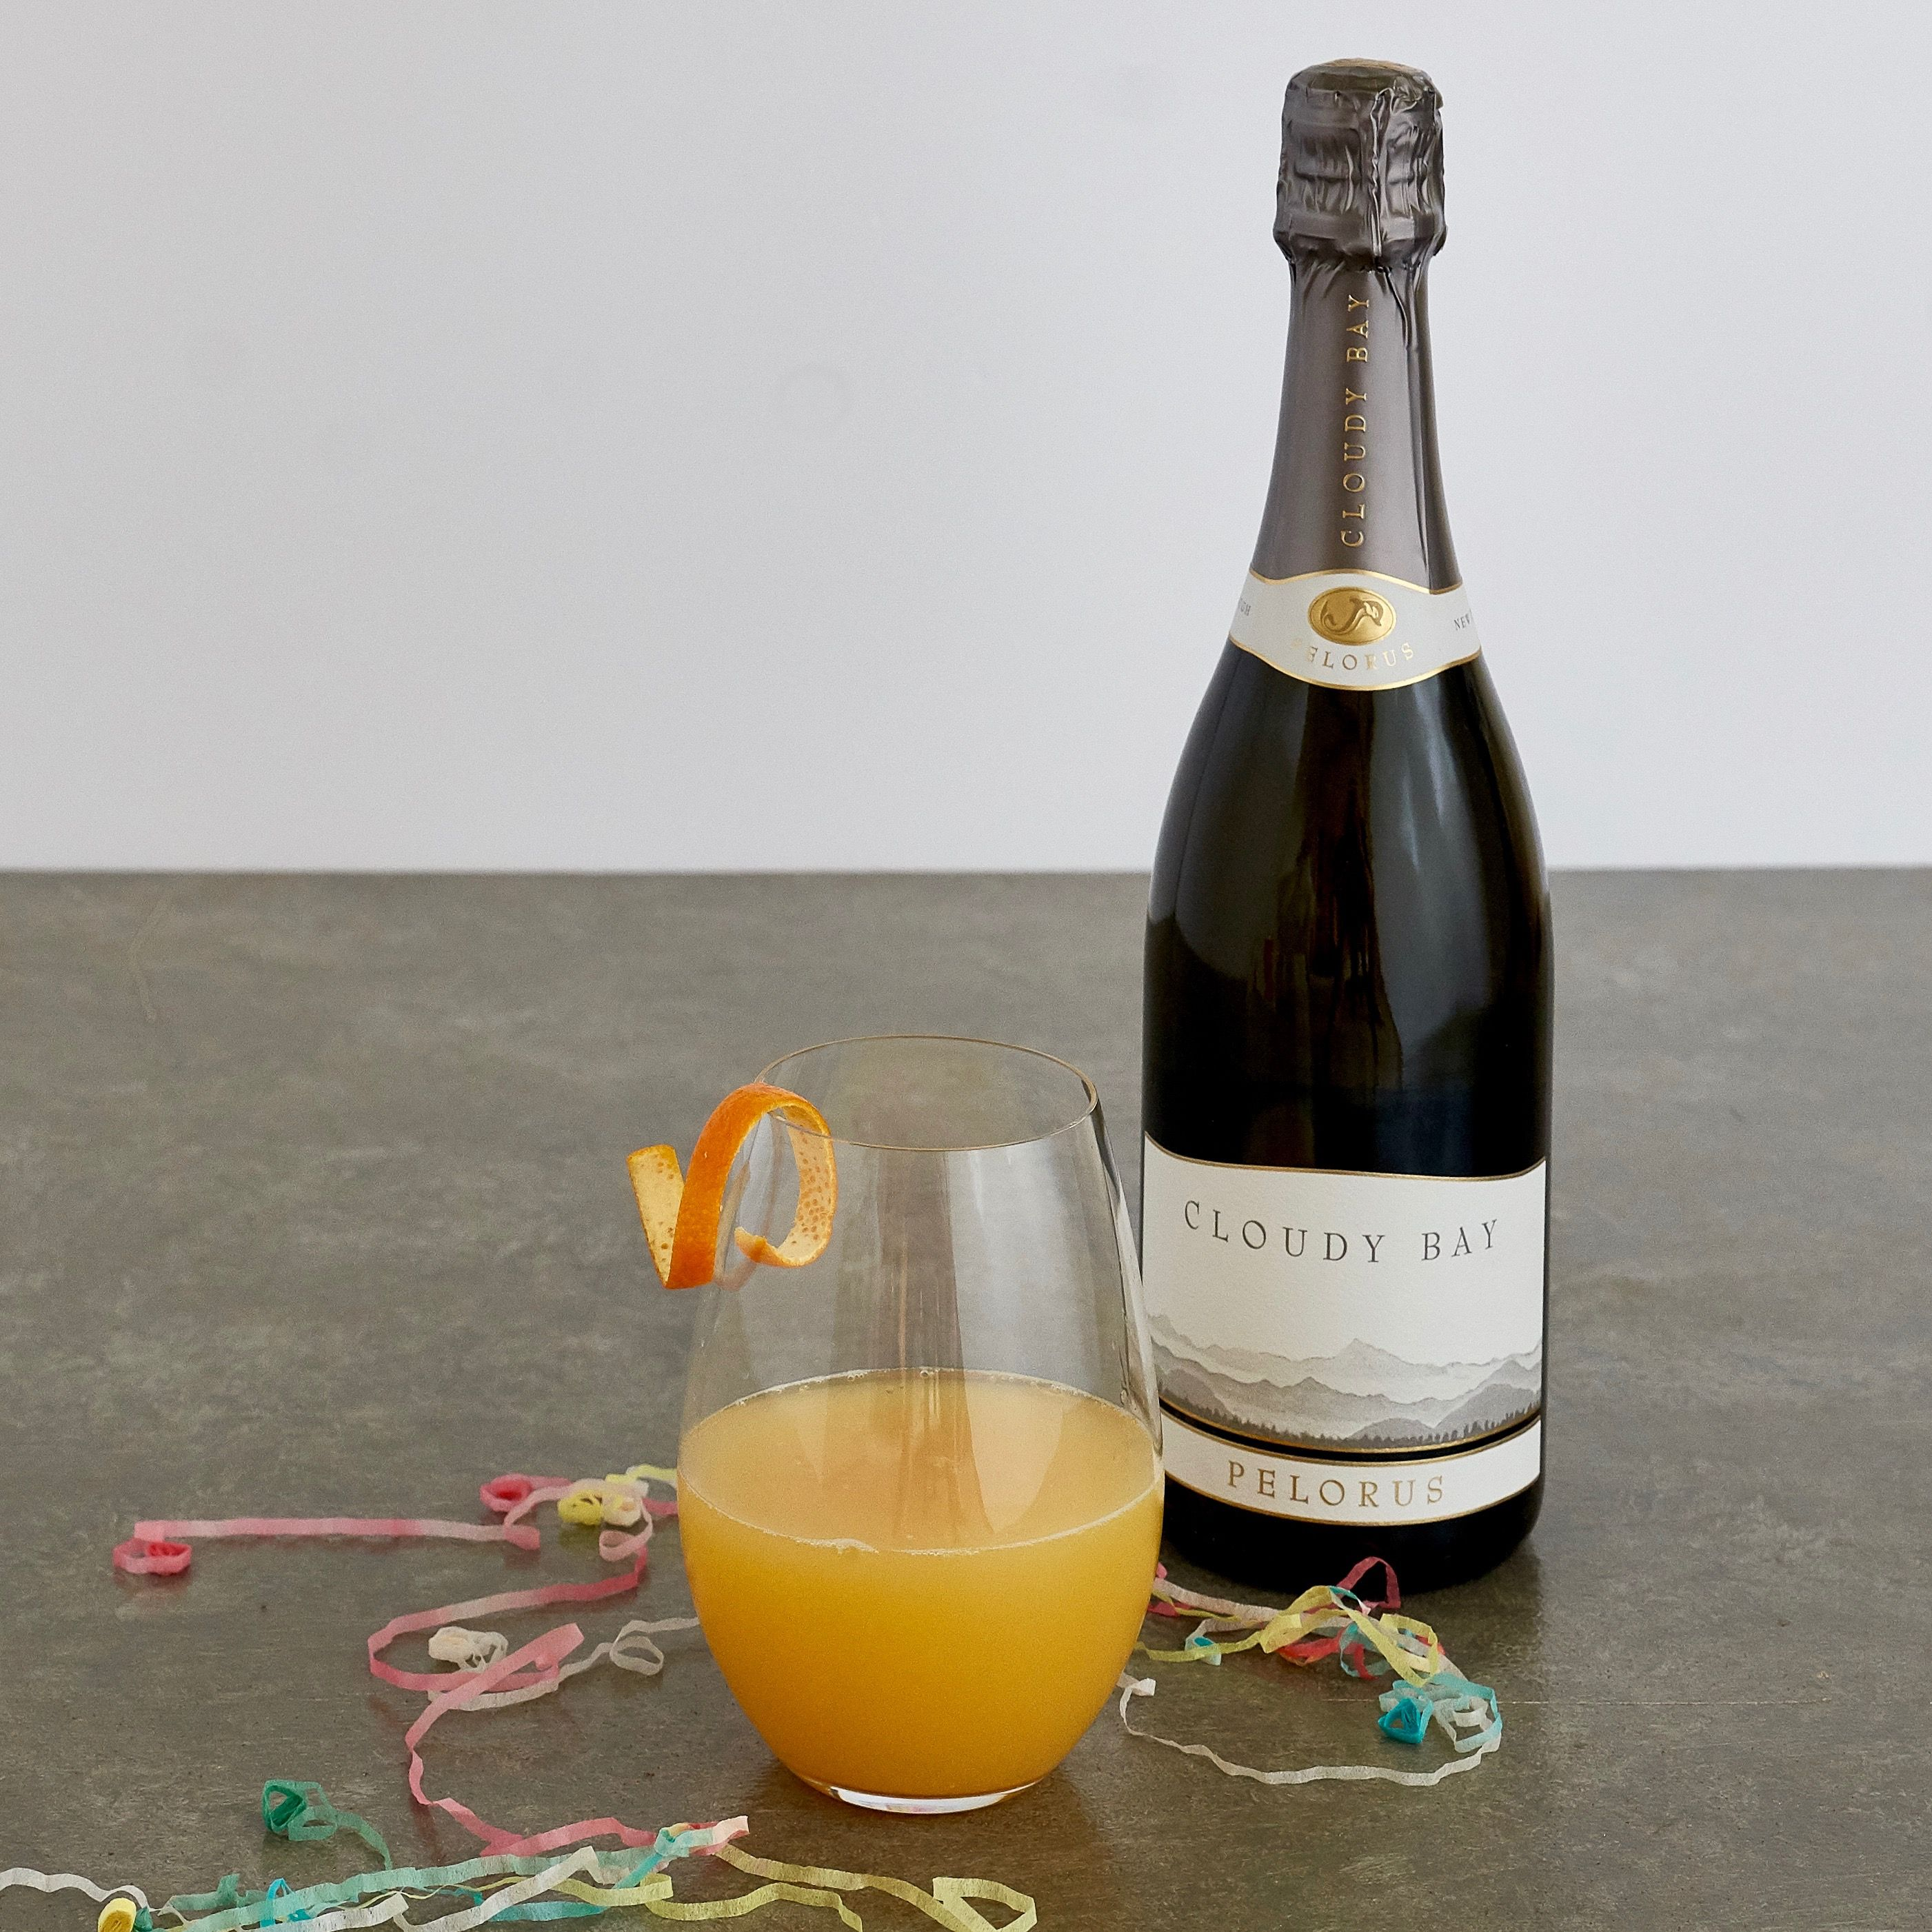 f140aaf8e14 Mimosa - this popular brunch drink is thought to have originated in the  1920s at the Hotel Ritz in Paris and been named after yellow wattle flowers  (also ...